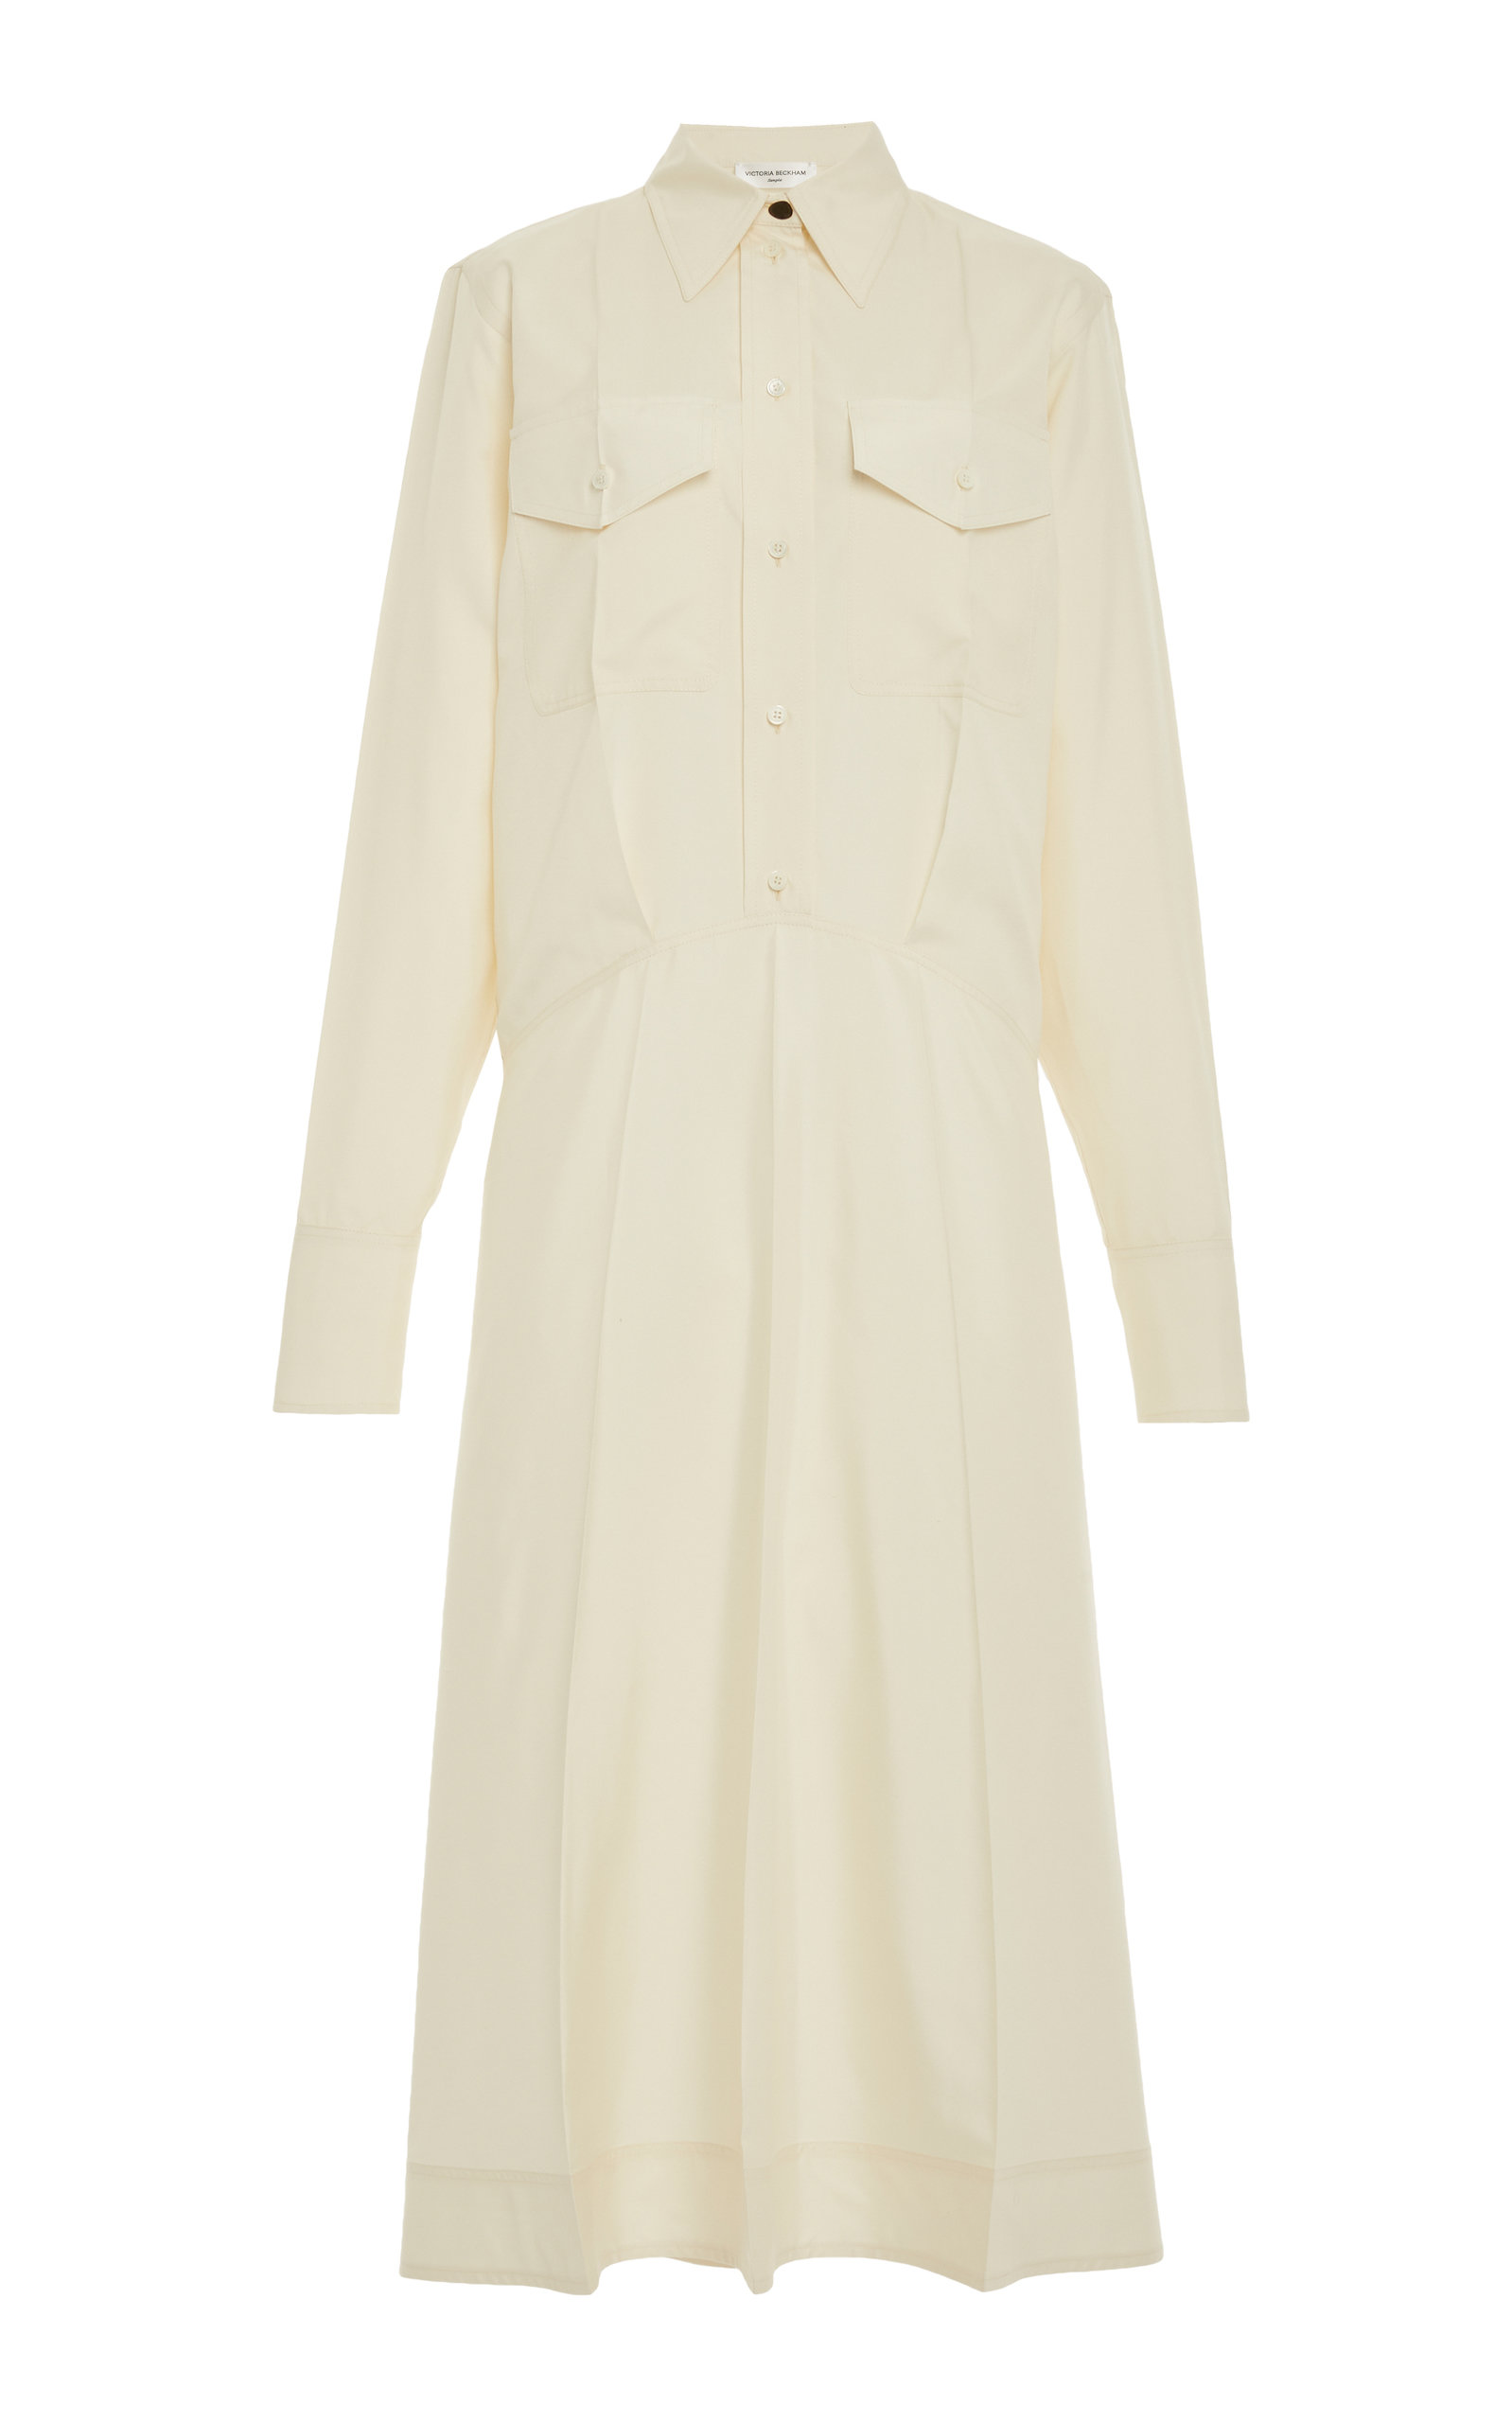 Victoria Beckham Silk Poplin Utility Shirt Dress In White